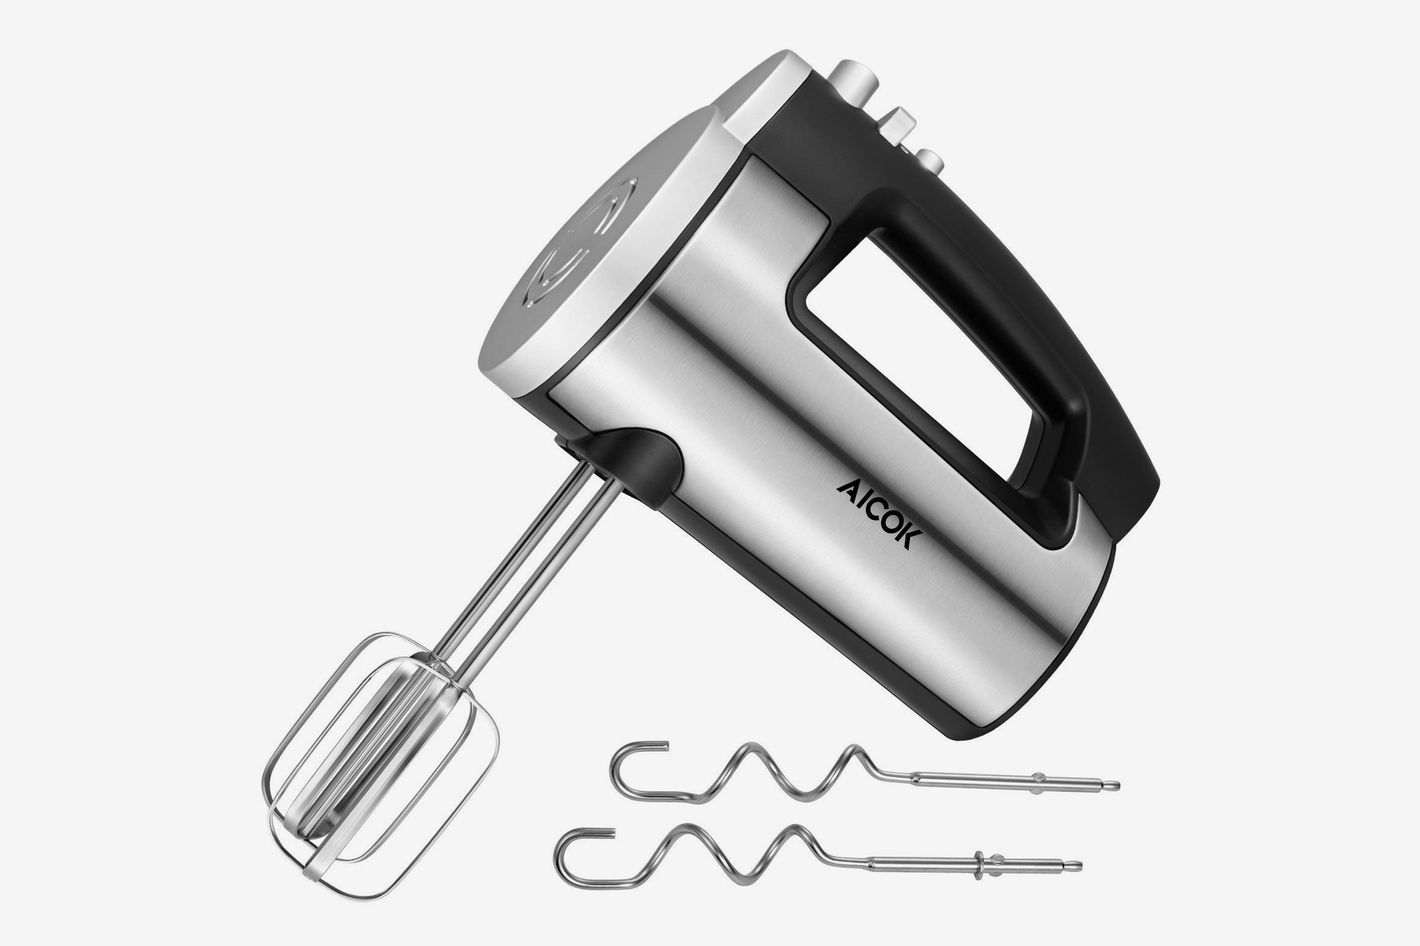 Aicok Hand Mixer 6 Speed Classic Stainless Steel Mixer Ultra Power Electric Mixer